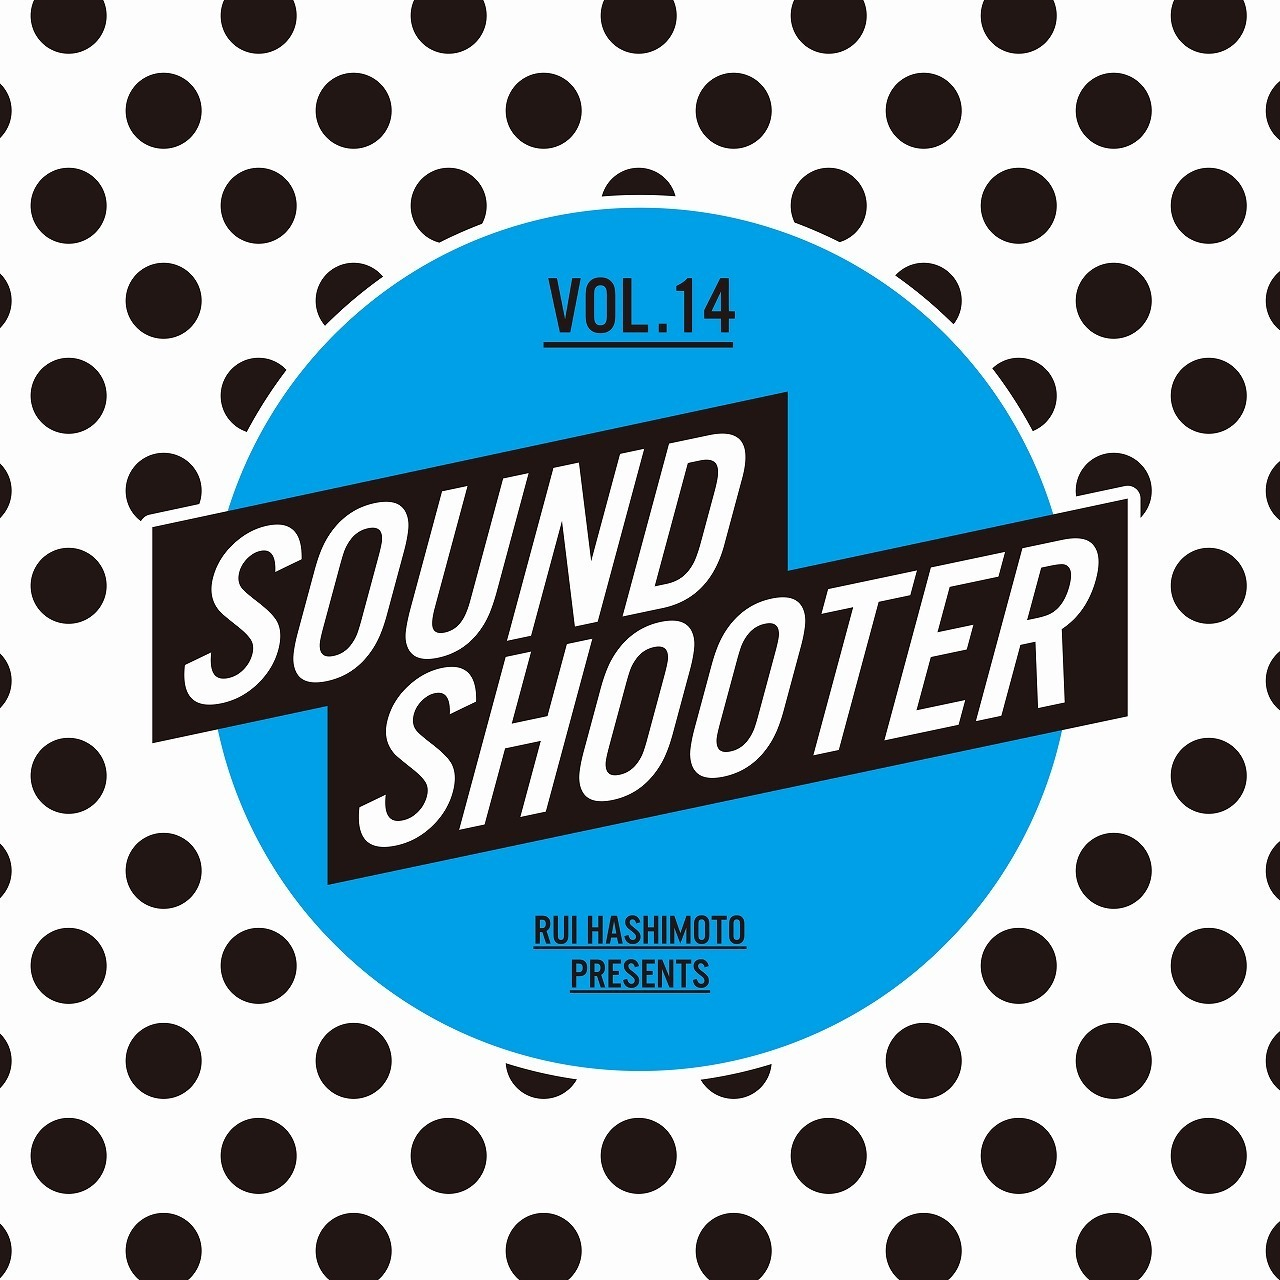 SOUND SHOOTER vol.14